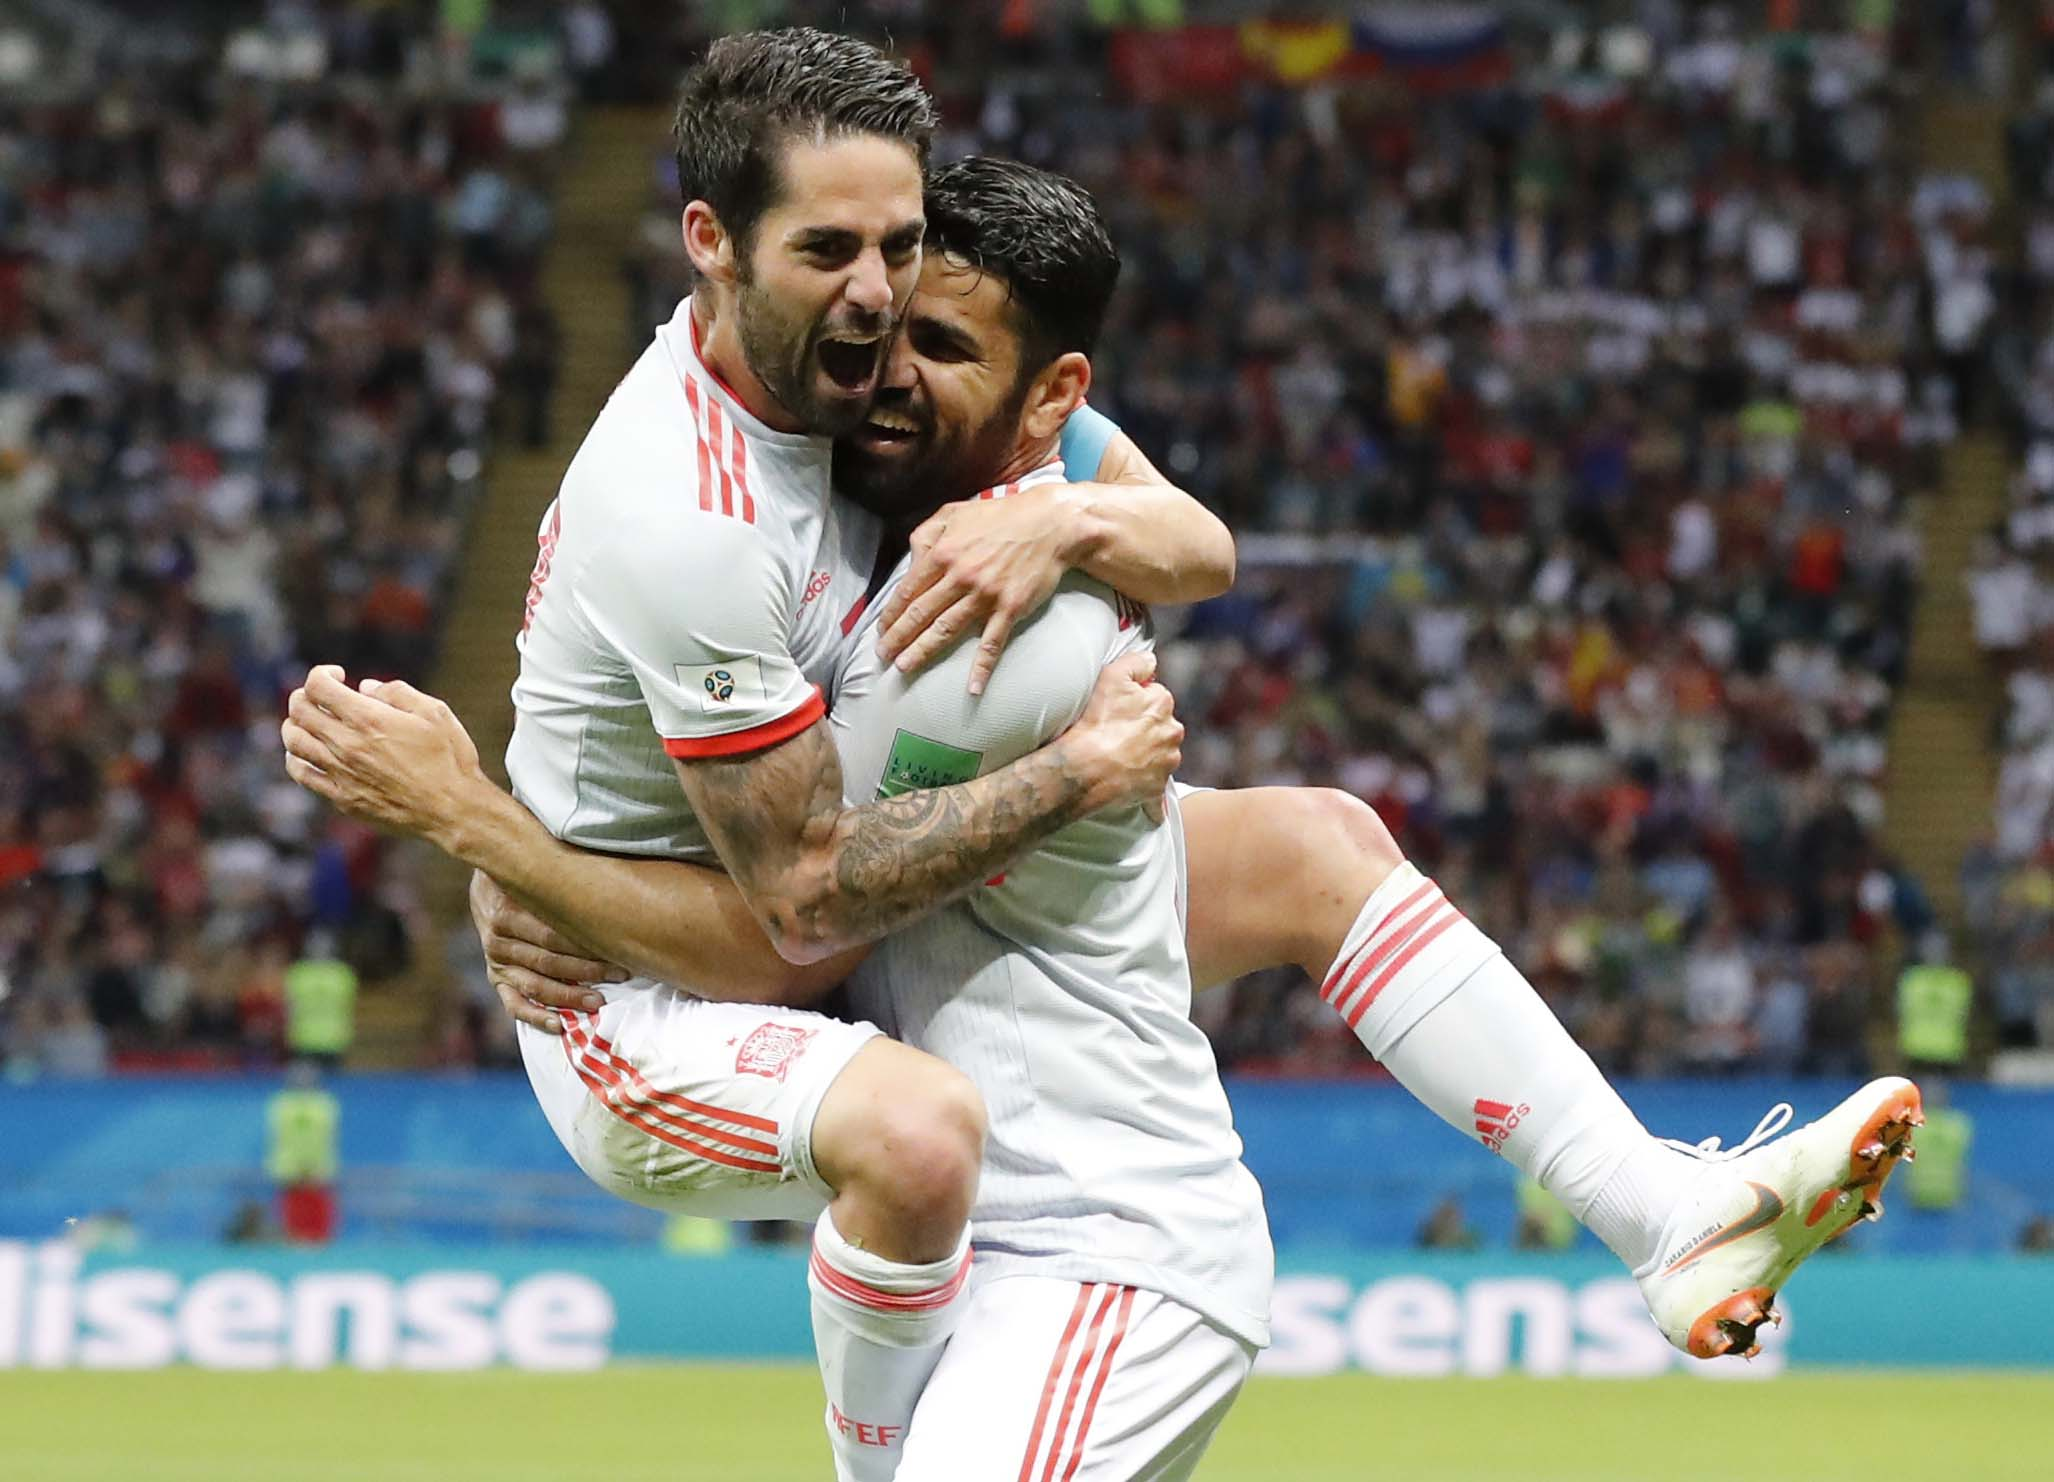 Spain's Diego Costa (right) celebrates with his teammate Isco after scoring his side's opening goal during the group B match between Iran and Spain at the 2018 soccer World Cup at the Kazan Arena in Kazan, Russia, on Wednesday.